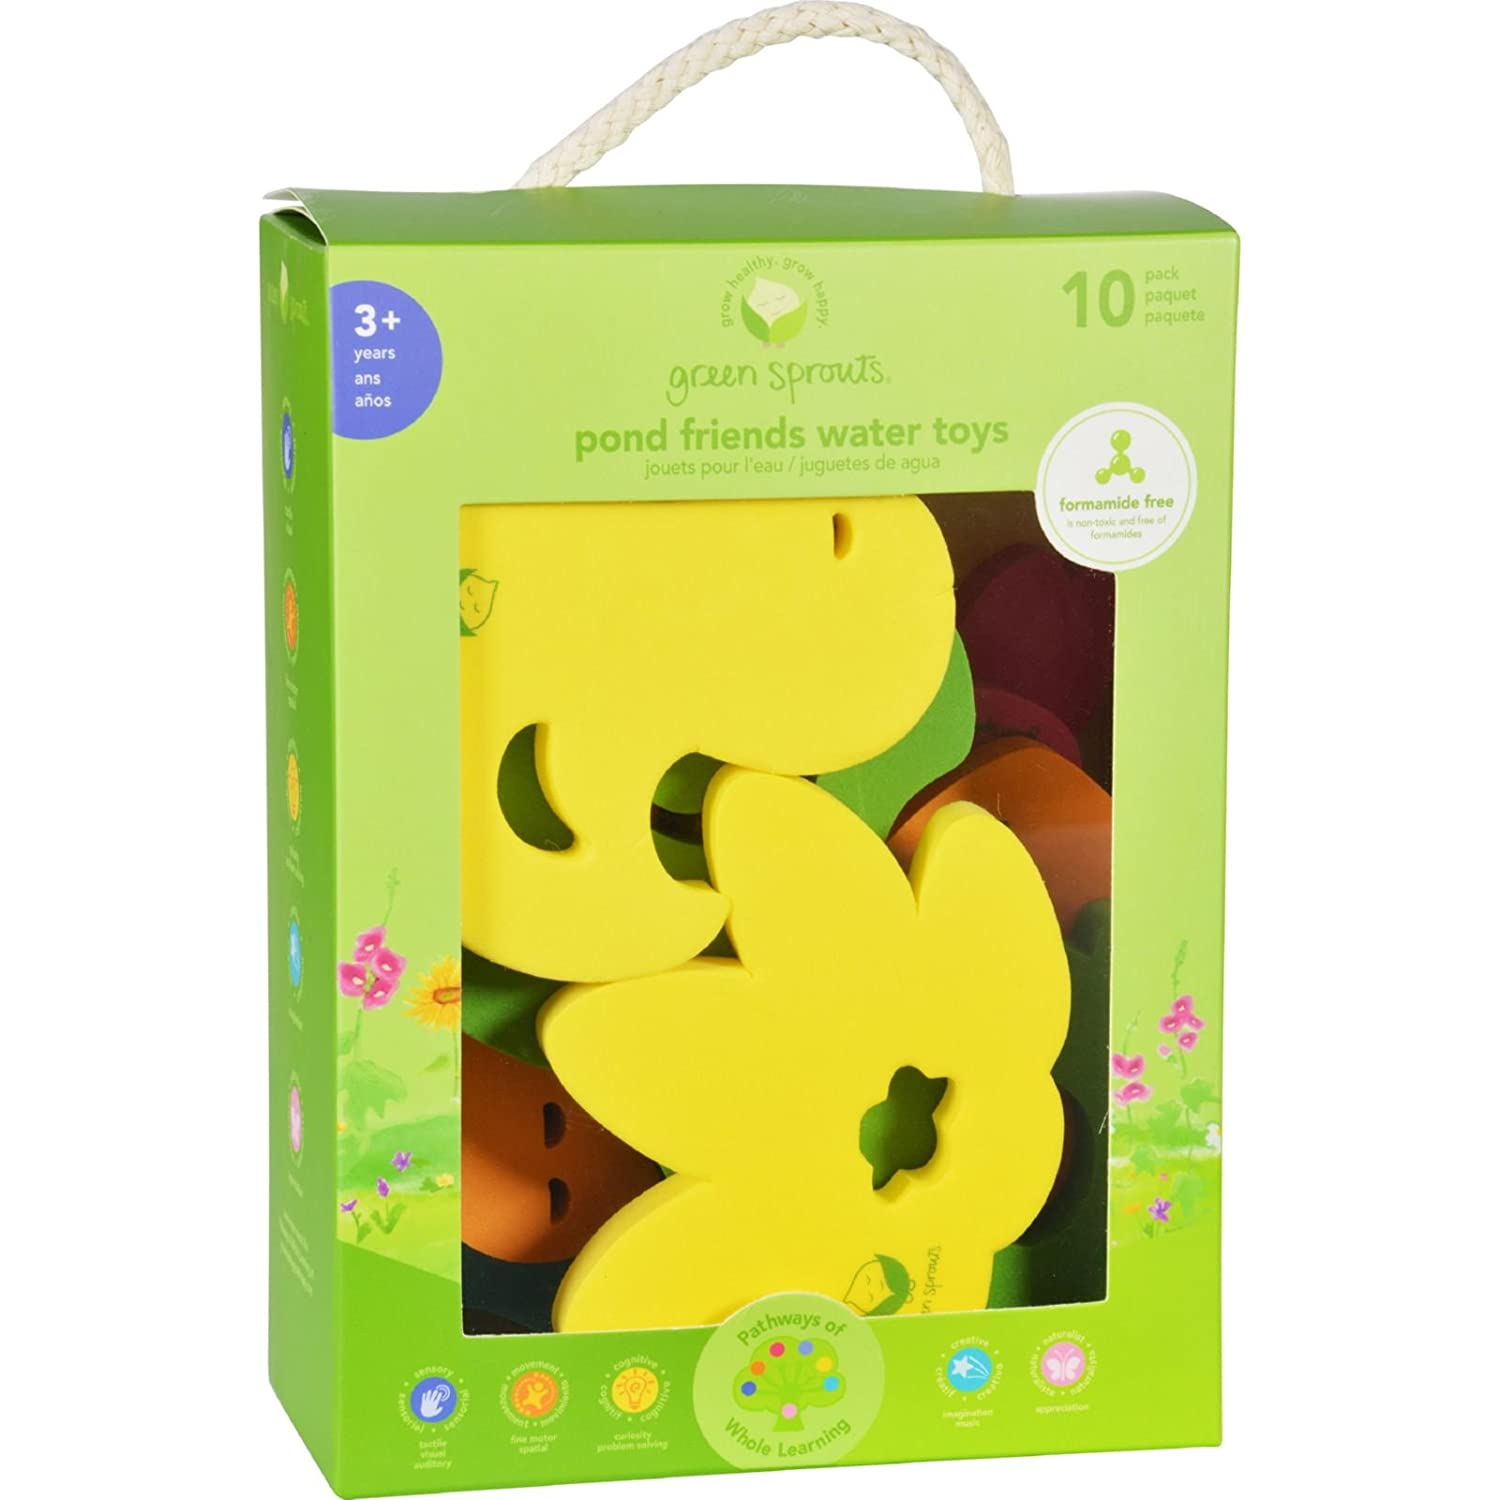 Green sprouts juguetes de ba o pond 3 yea envio for Estanque para bano